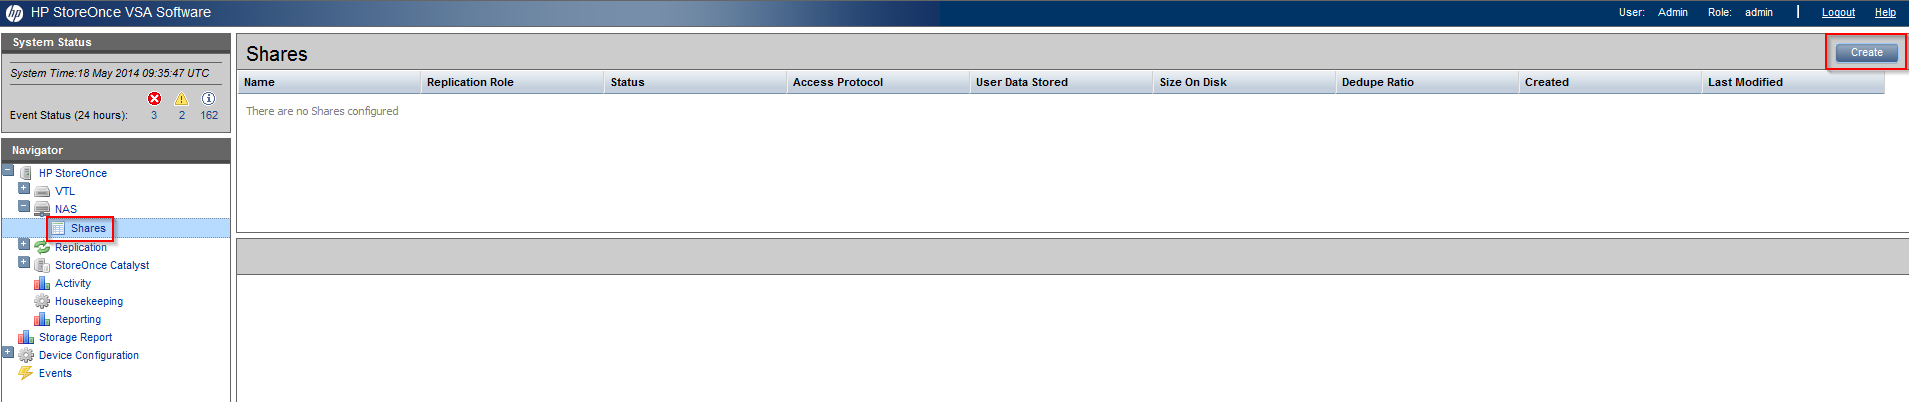 Protection of virtual machines with HP StoreOnce VSA & Veeam